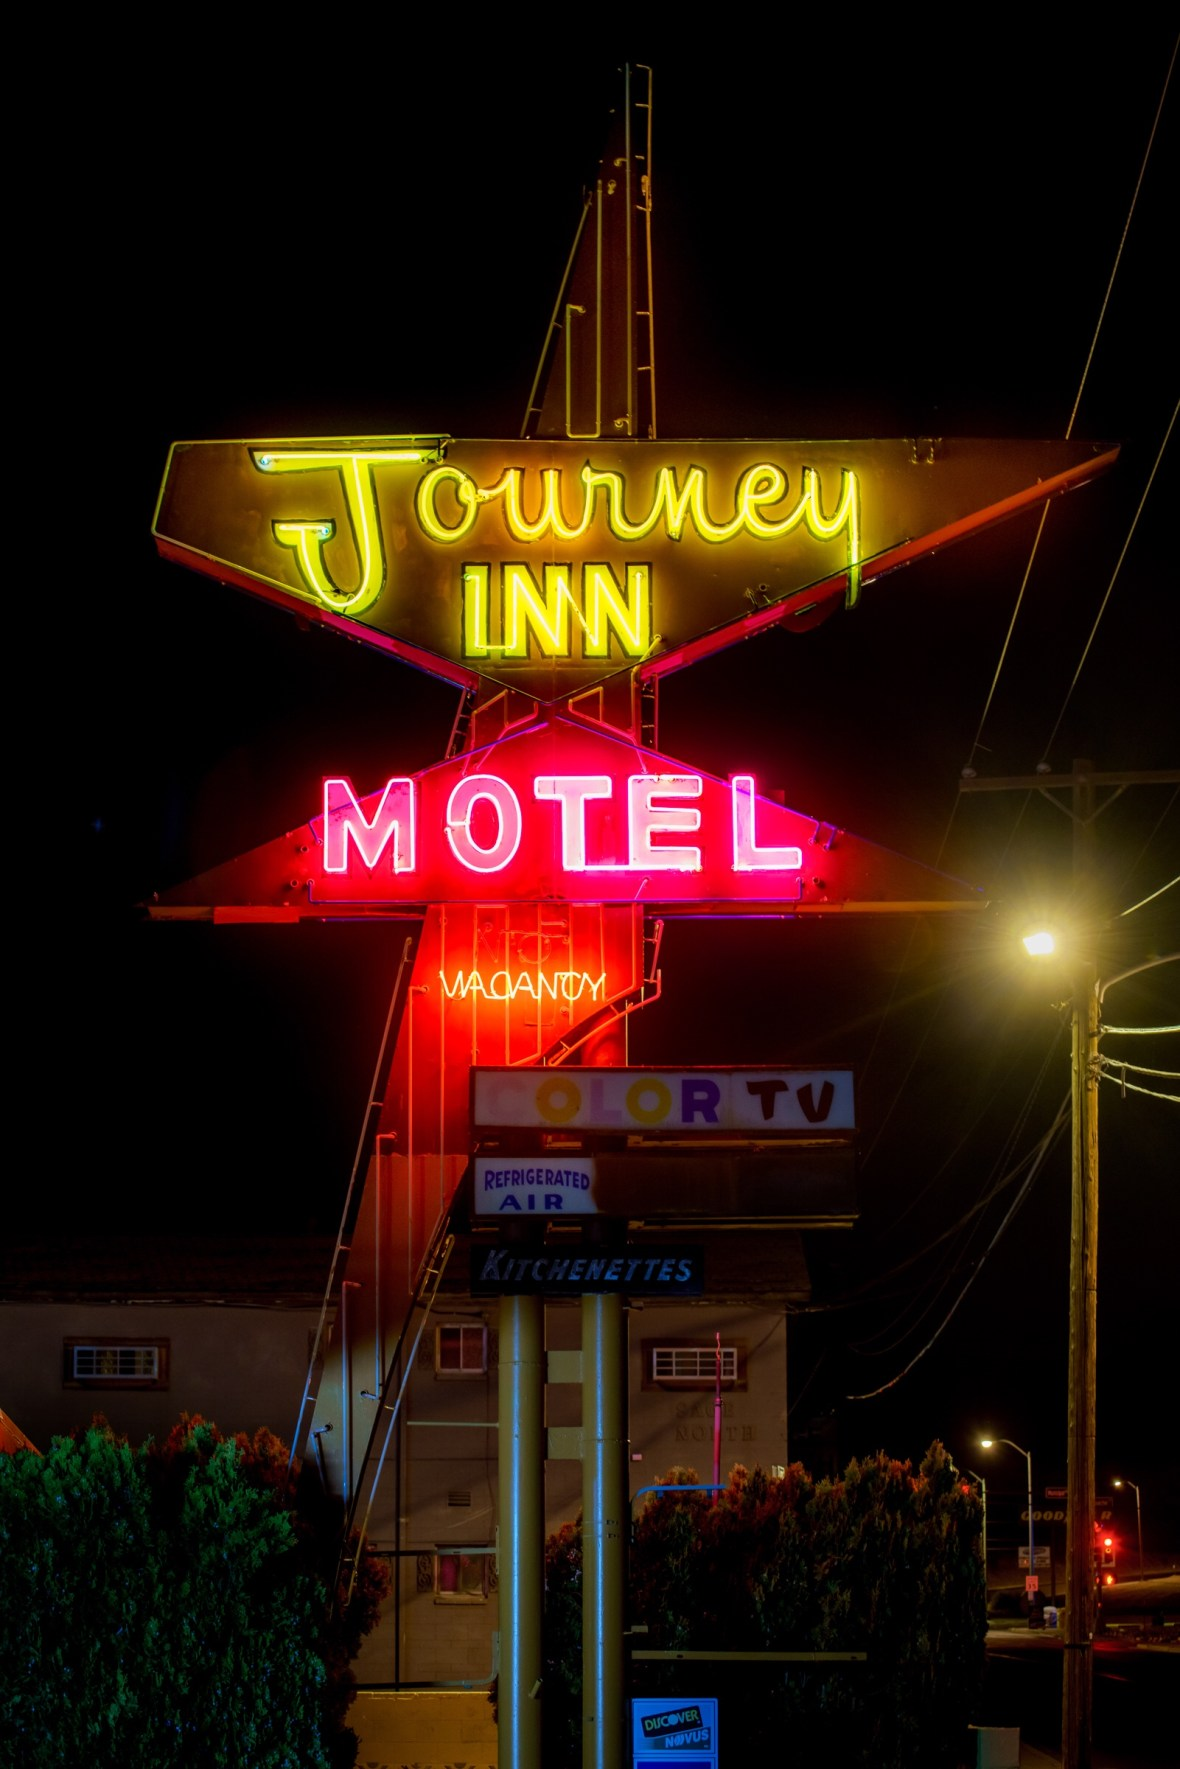 Journey Inn - 317 Airport Drive, Farmington, New Mexico U.S.A. - June 14, 2016